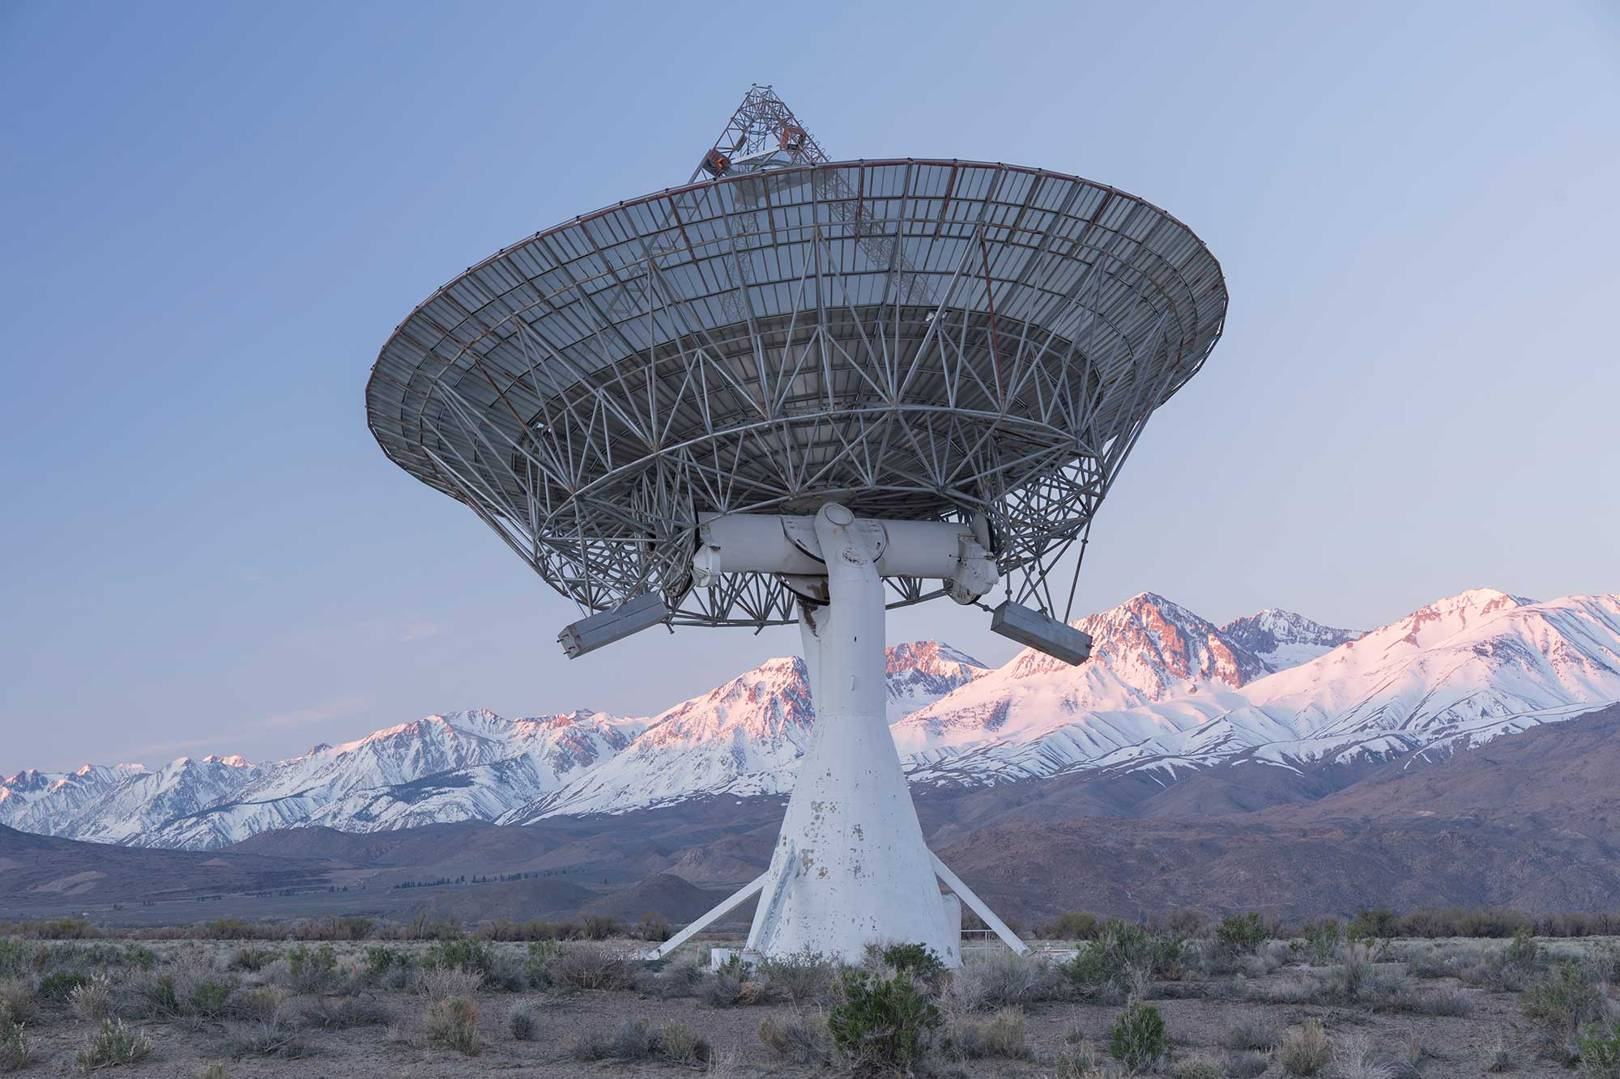 The almighty tussle over whether we should talk to aliens or not